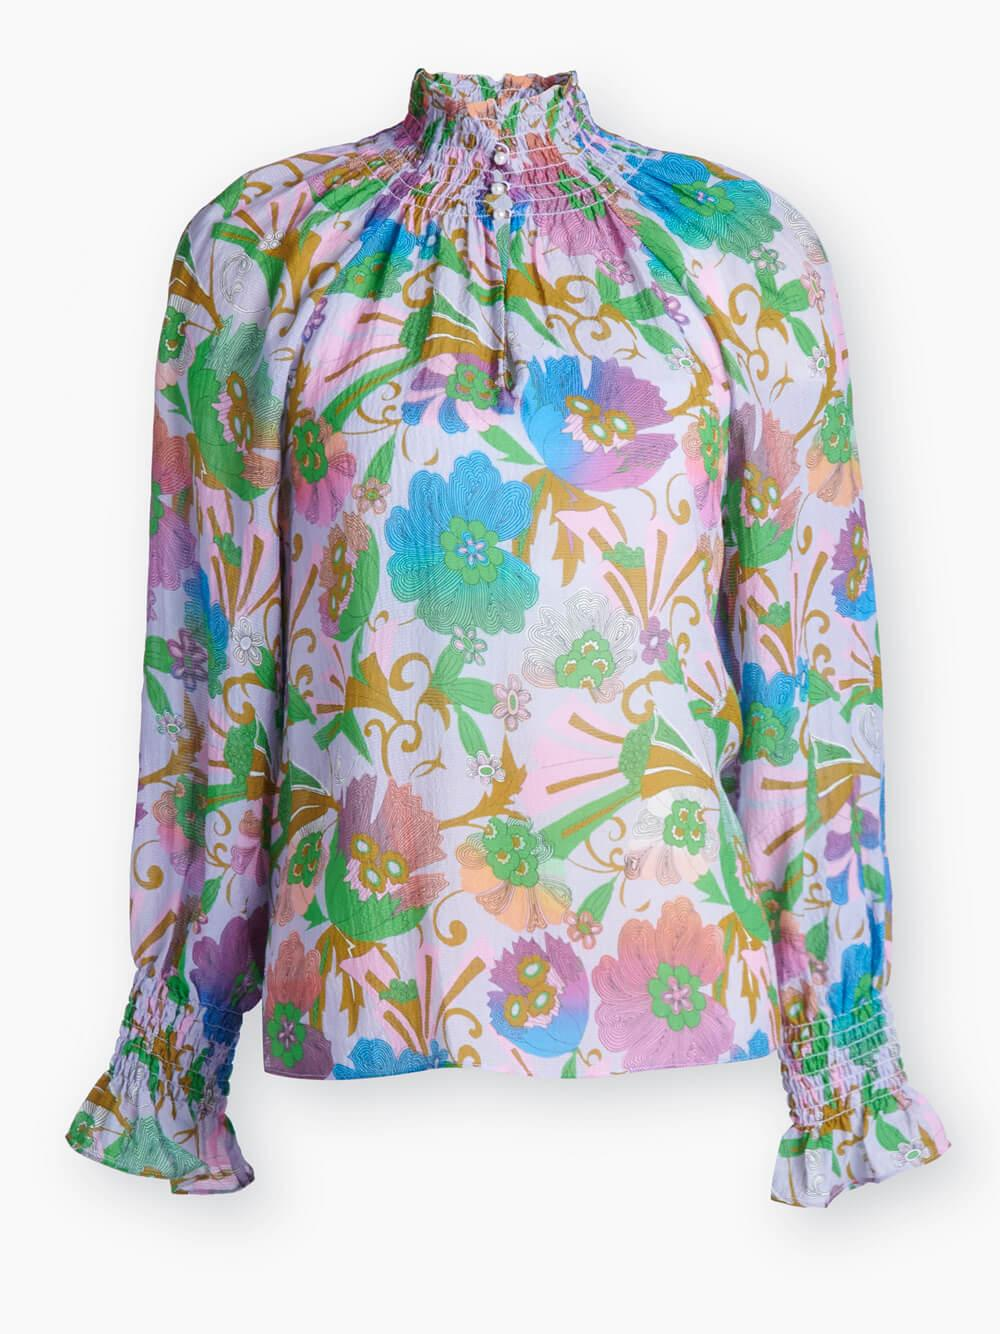 Alexis Fan Floral Printed Blouse Item # F20T547163